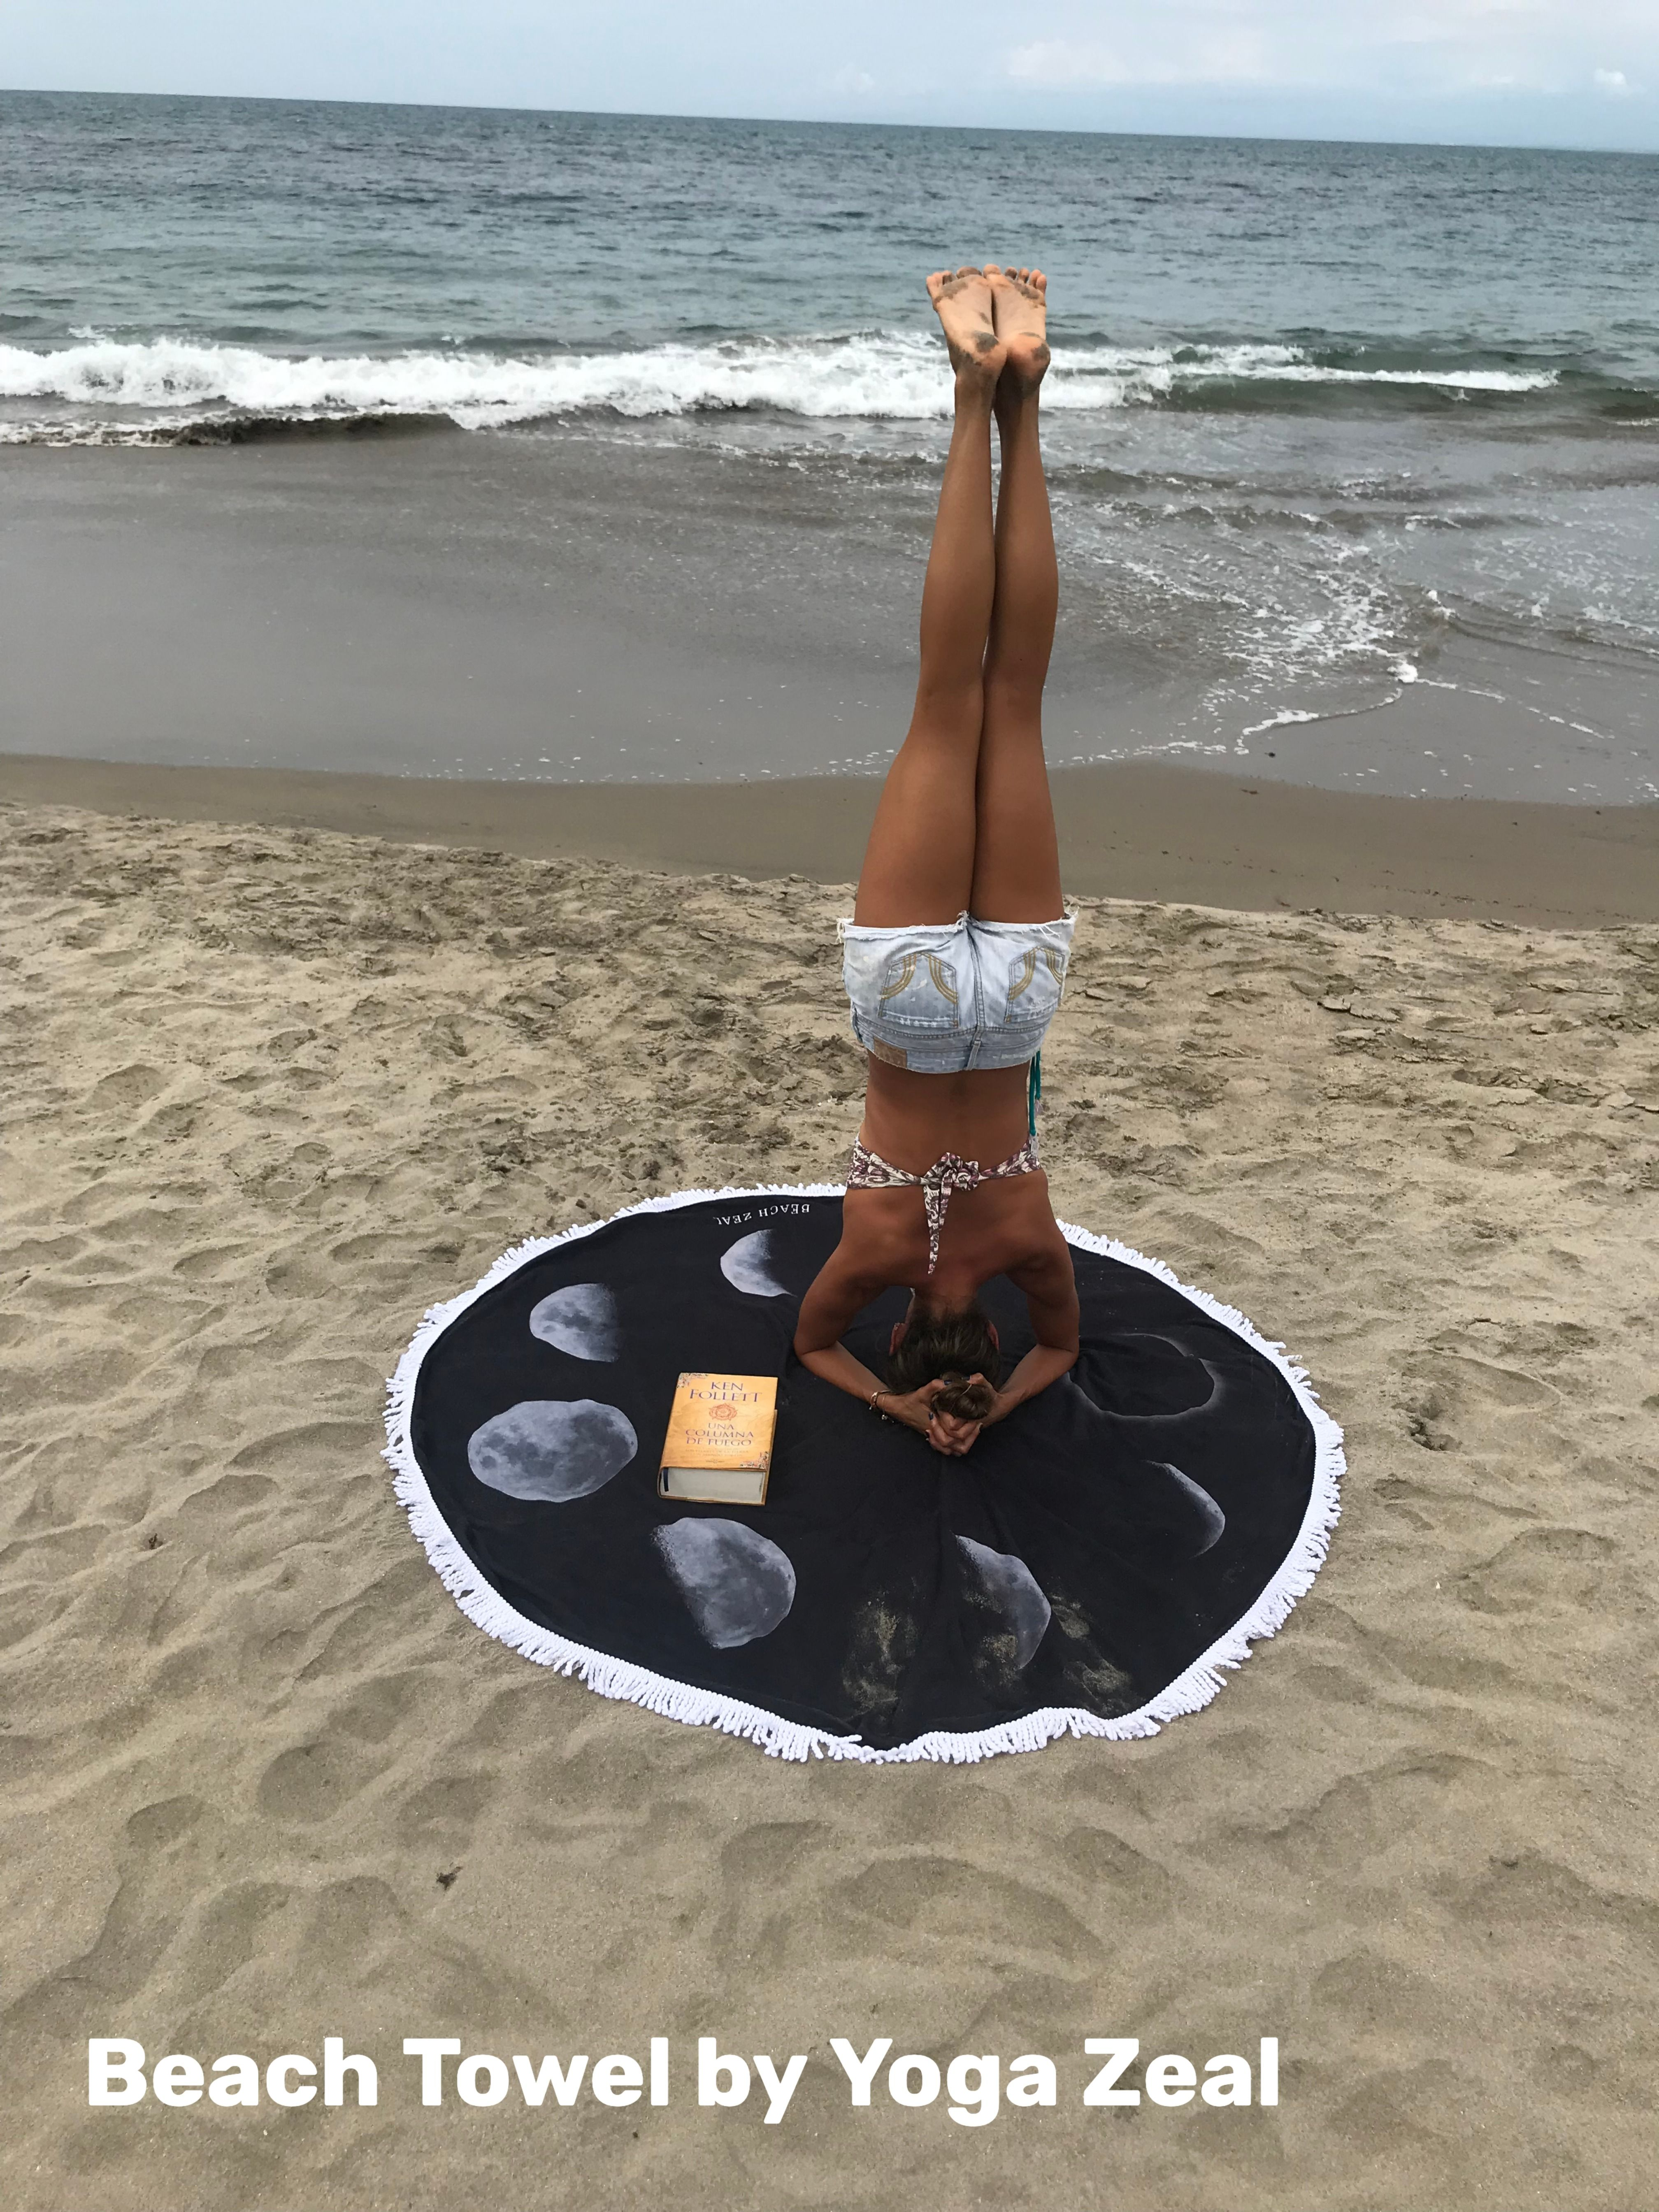 The Best Beach Towels With Images Moon Phases Yoga Mat Round